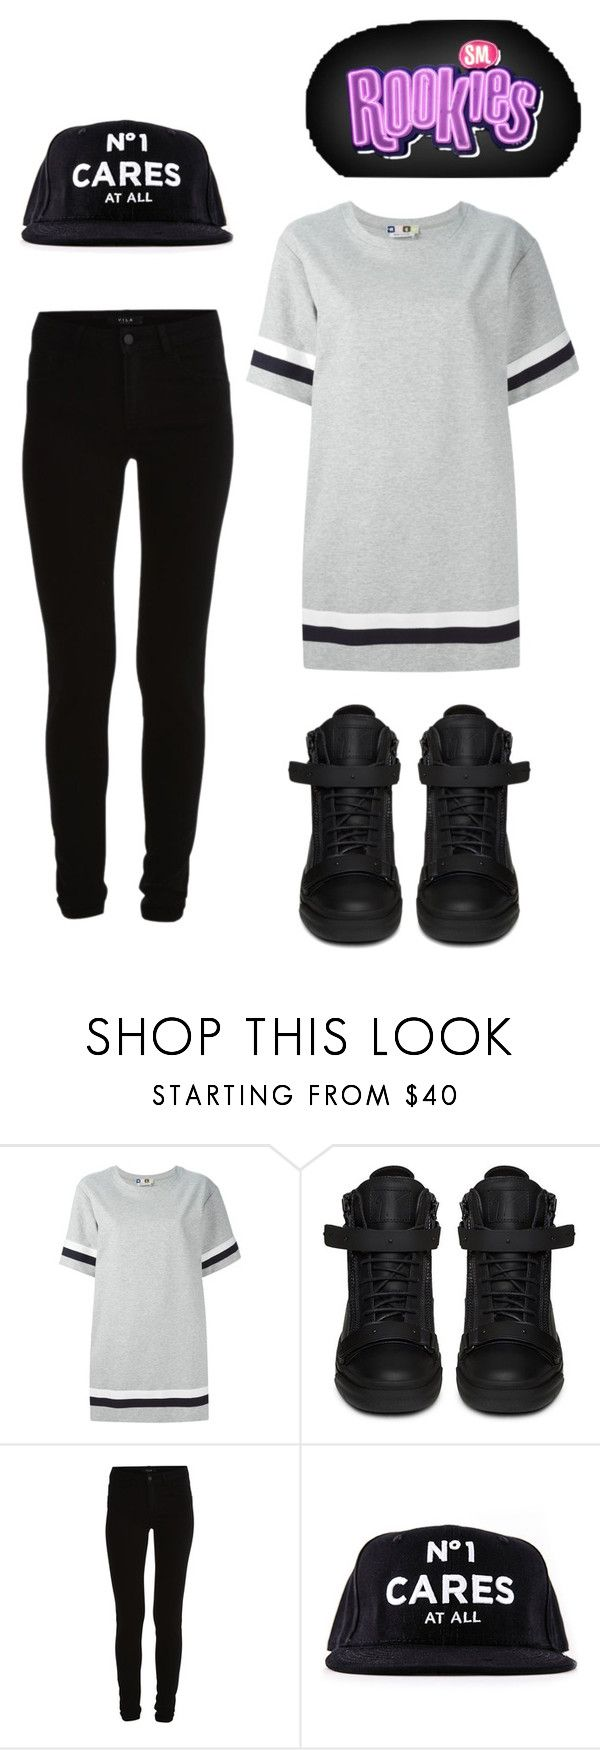 """new sm rookie"" by mh-loves1d ❤ liked on Polyvore featuring MSGM, Giuseppe Zanotti, Vila Milano and Reason"